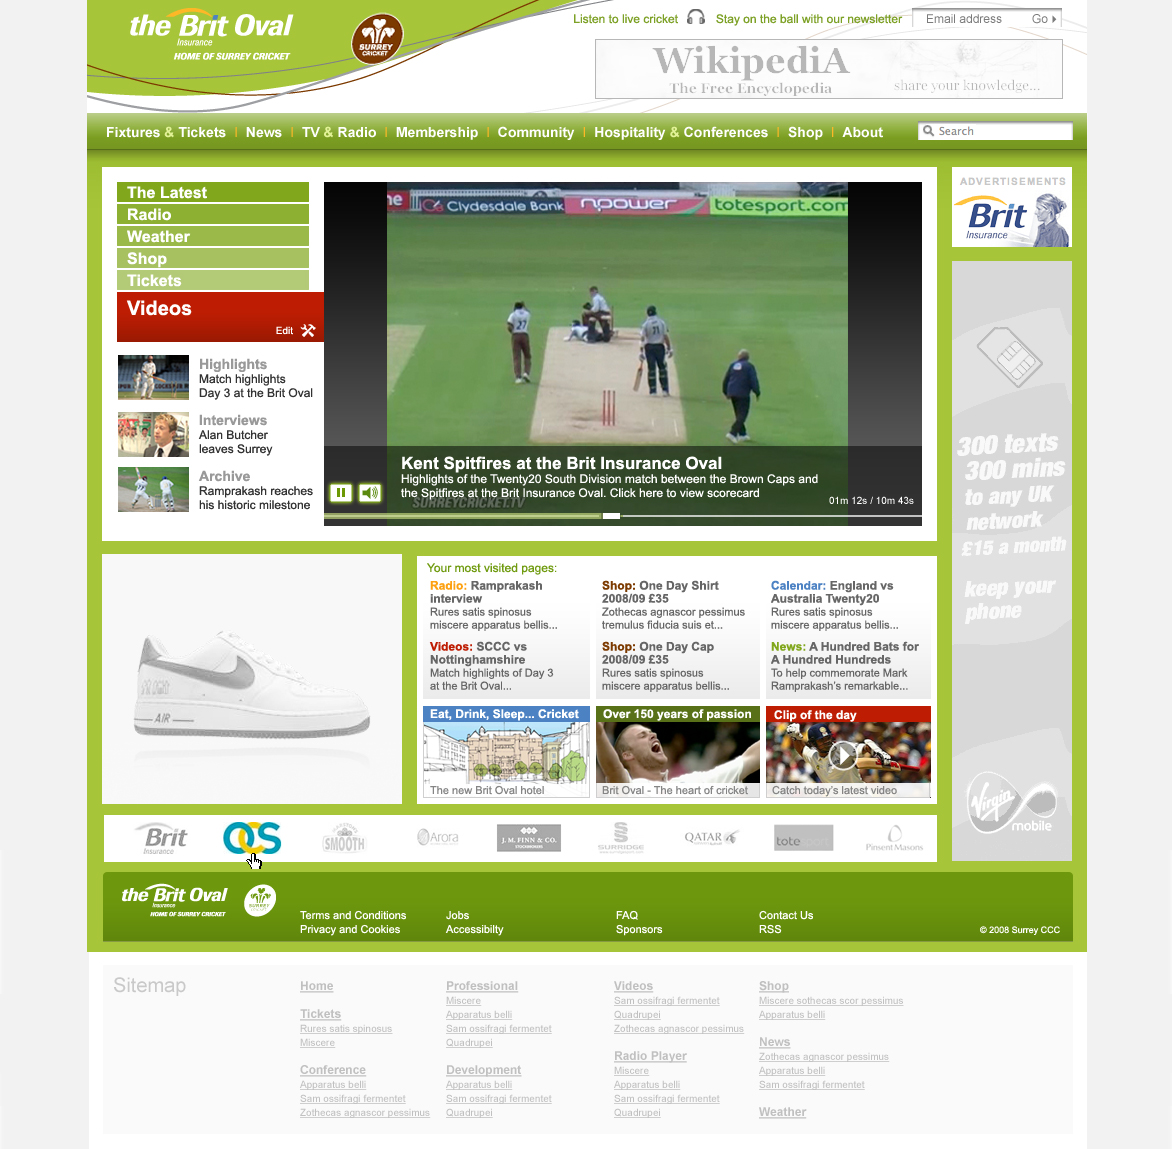 02_Oval_Home-video_Green_021008